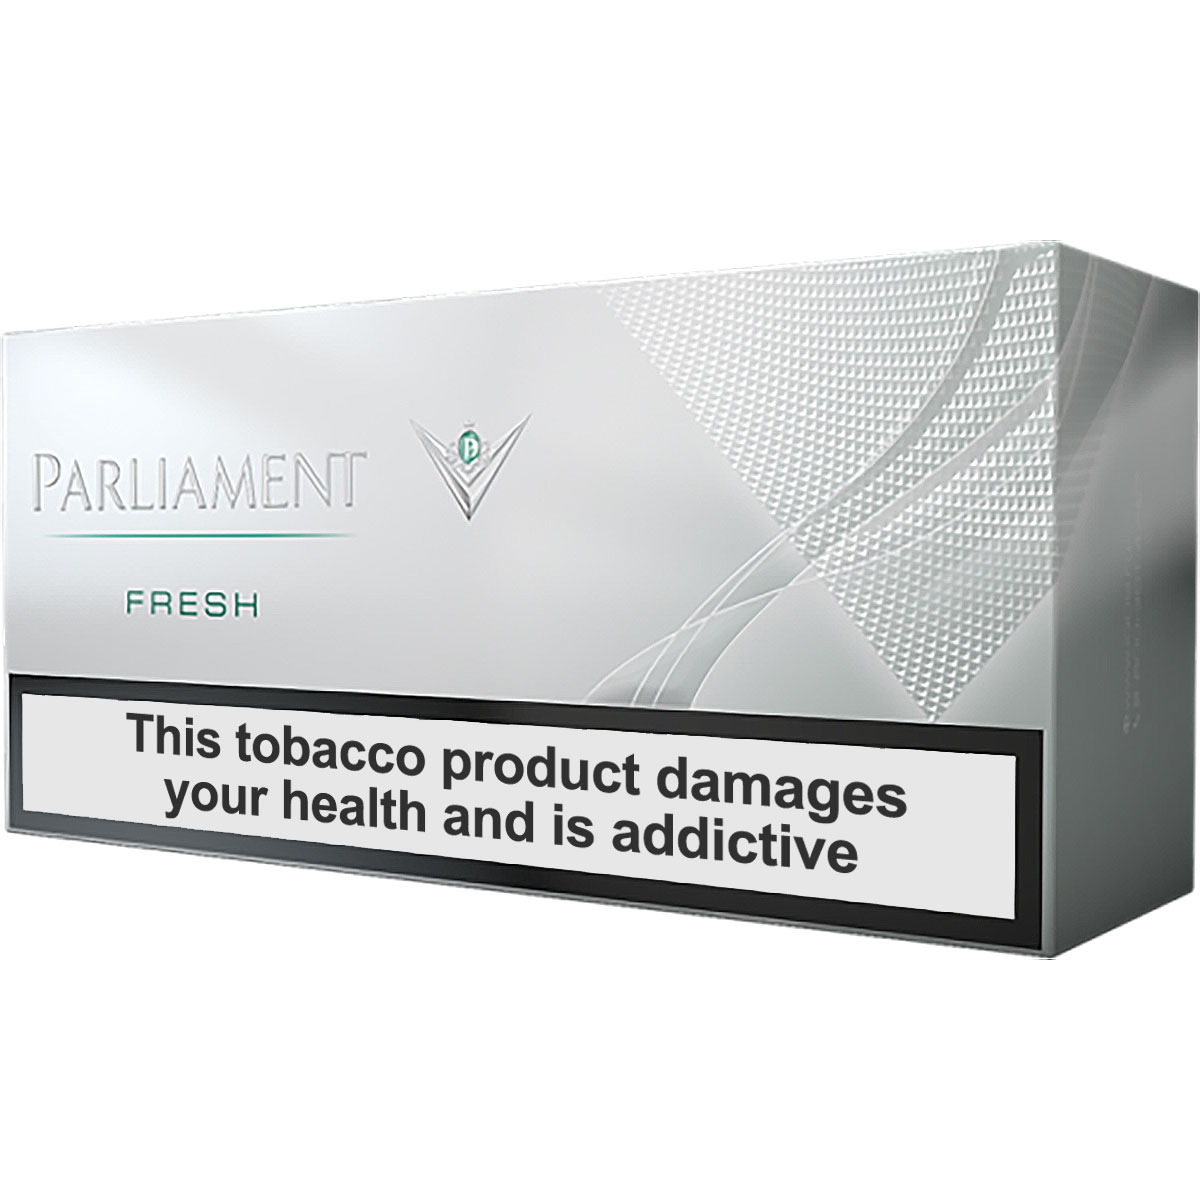 Parliament Fresh for IQOS - Limited Edition